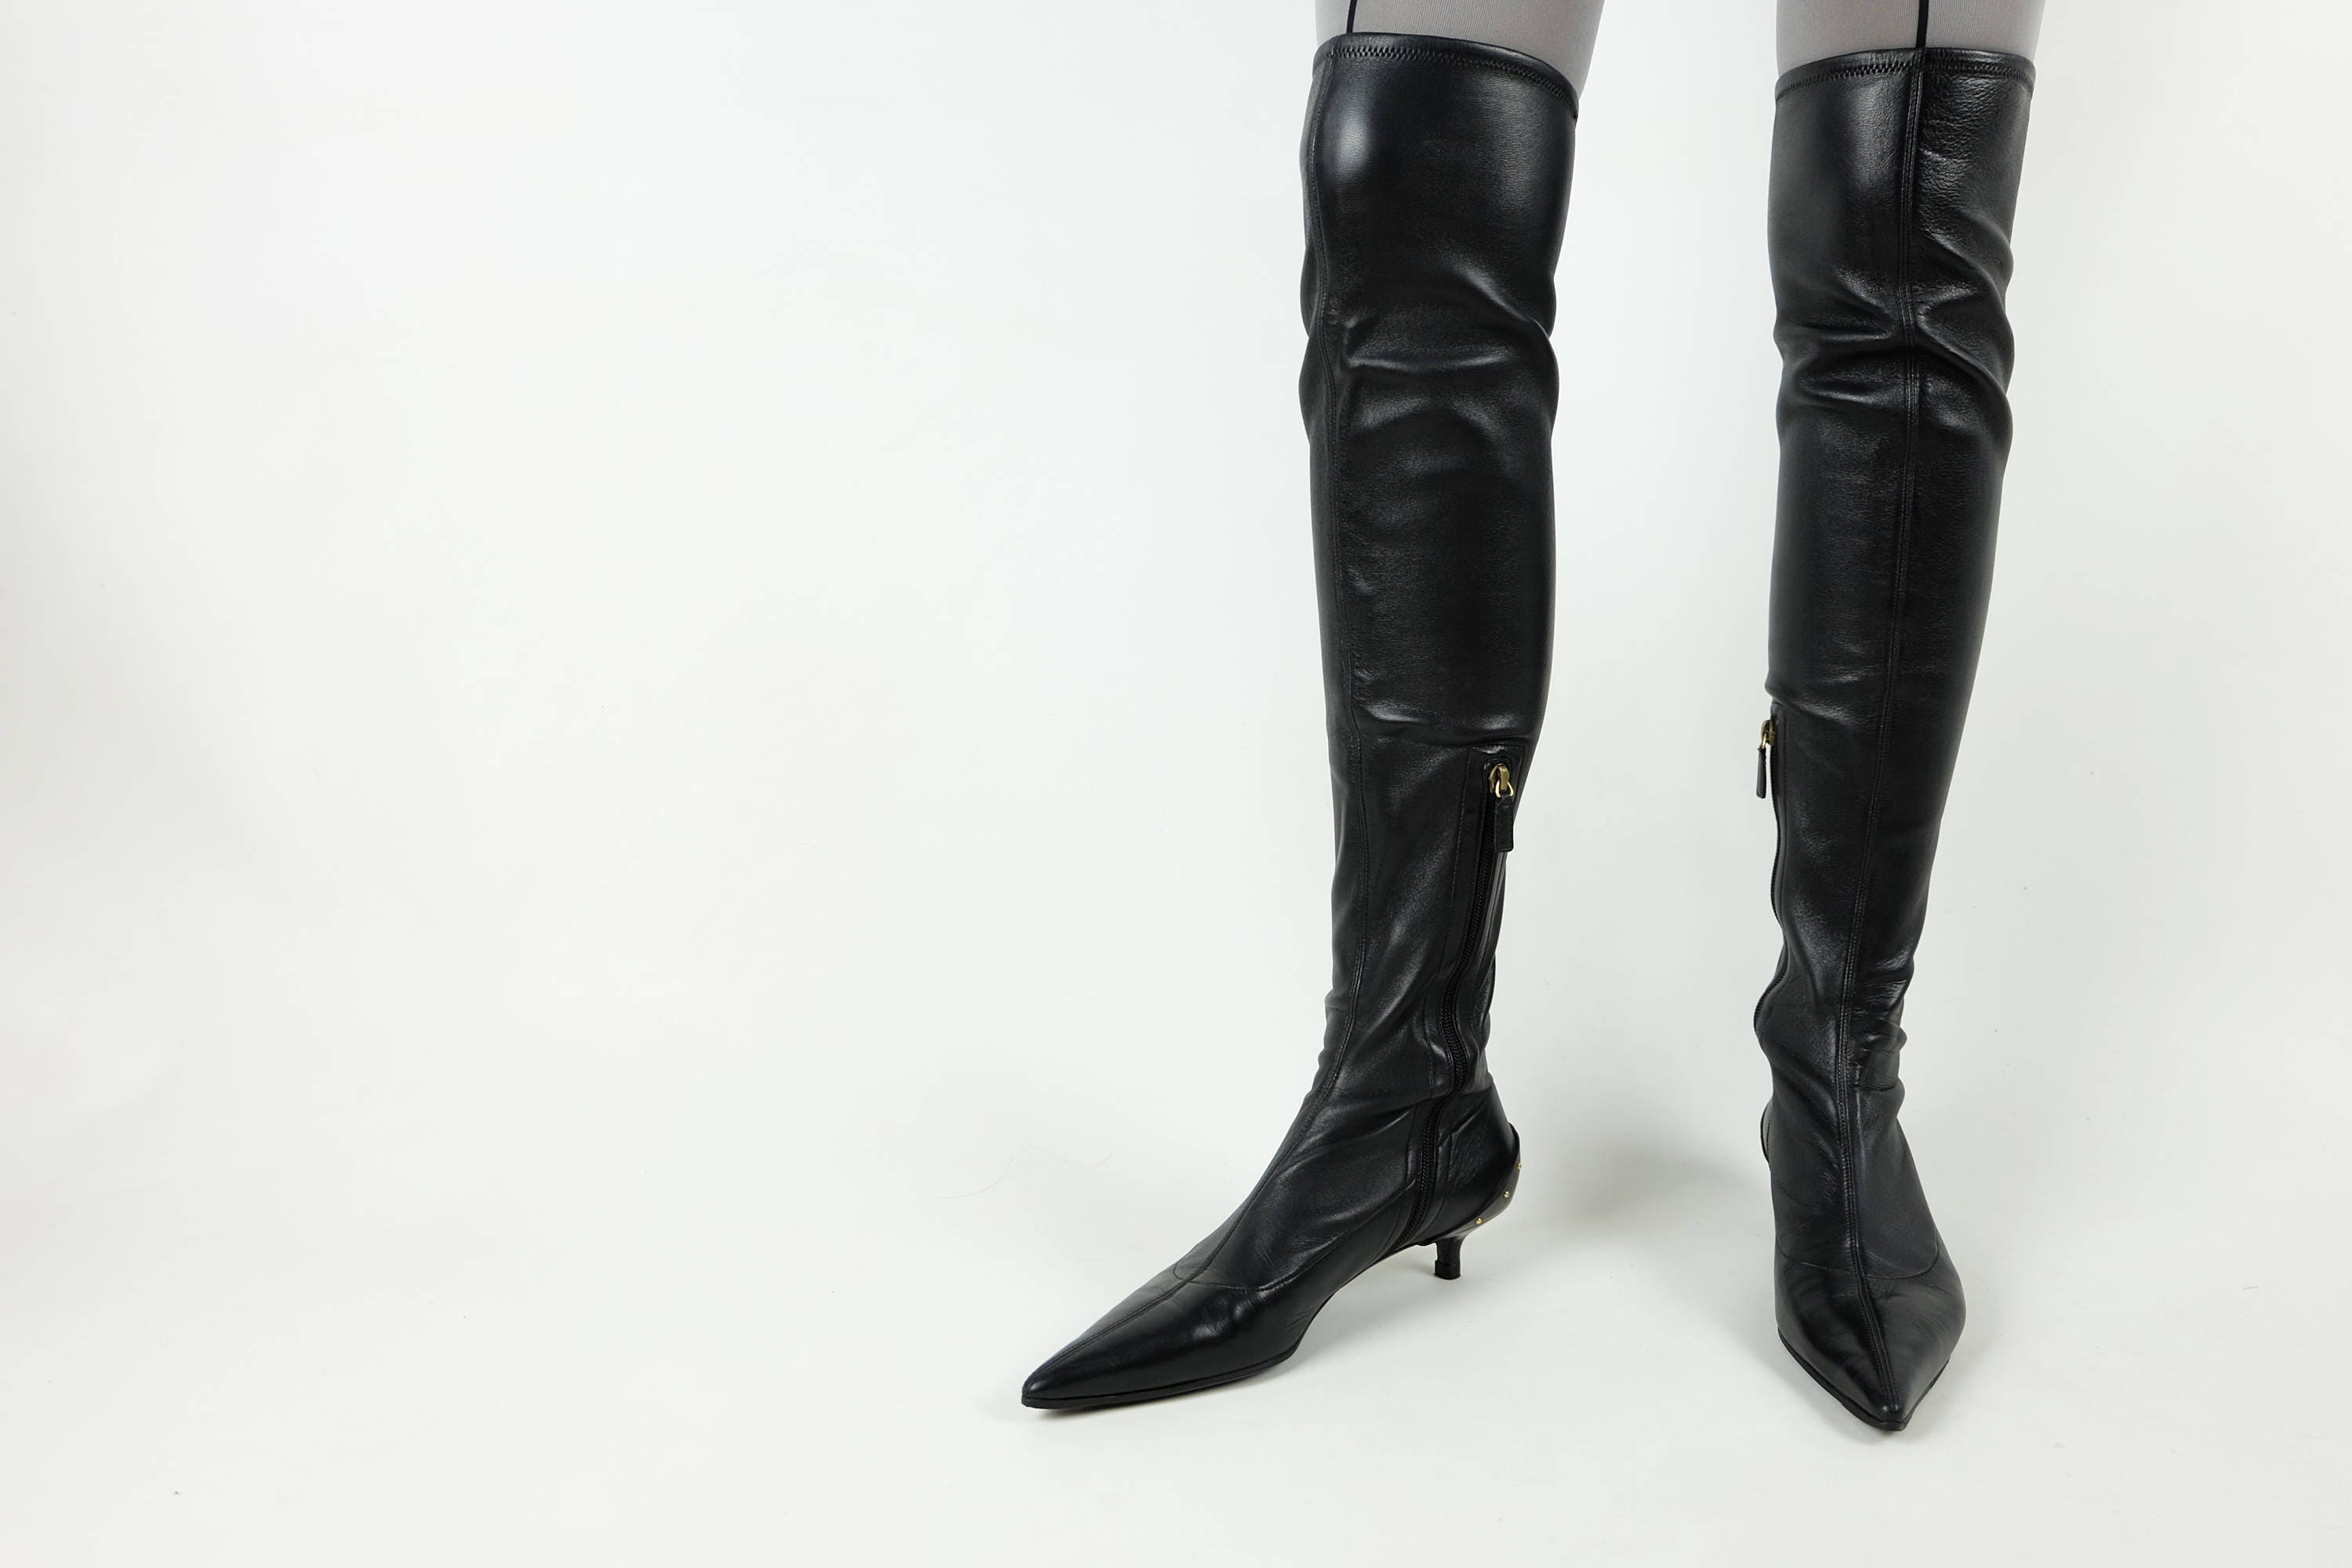 8d4b555e4e82 GUCCI Thigh High Boots  NAPPA Stretch Leather  Over the Knee Boots